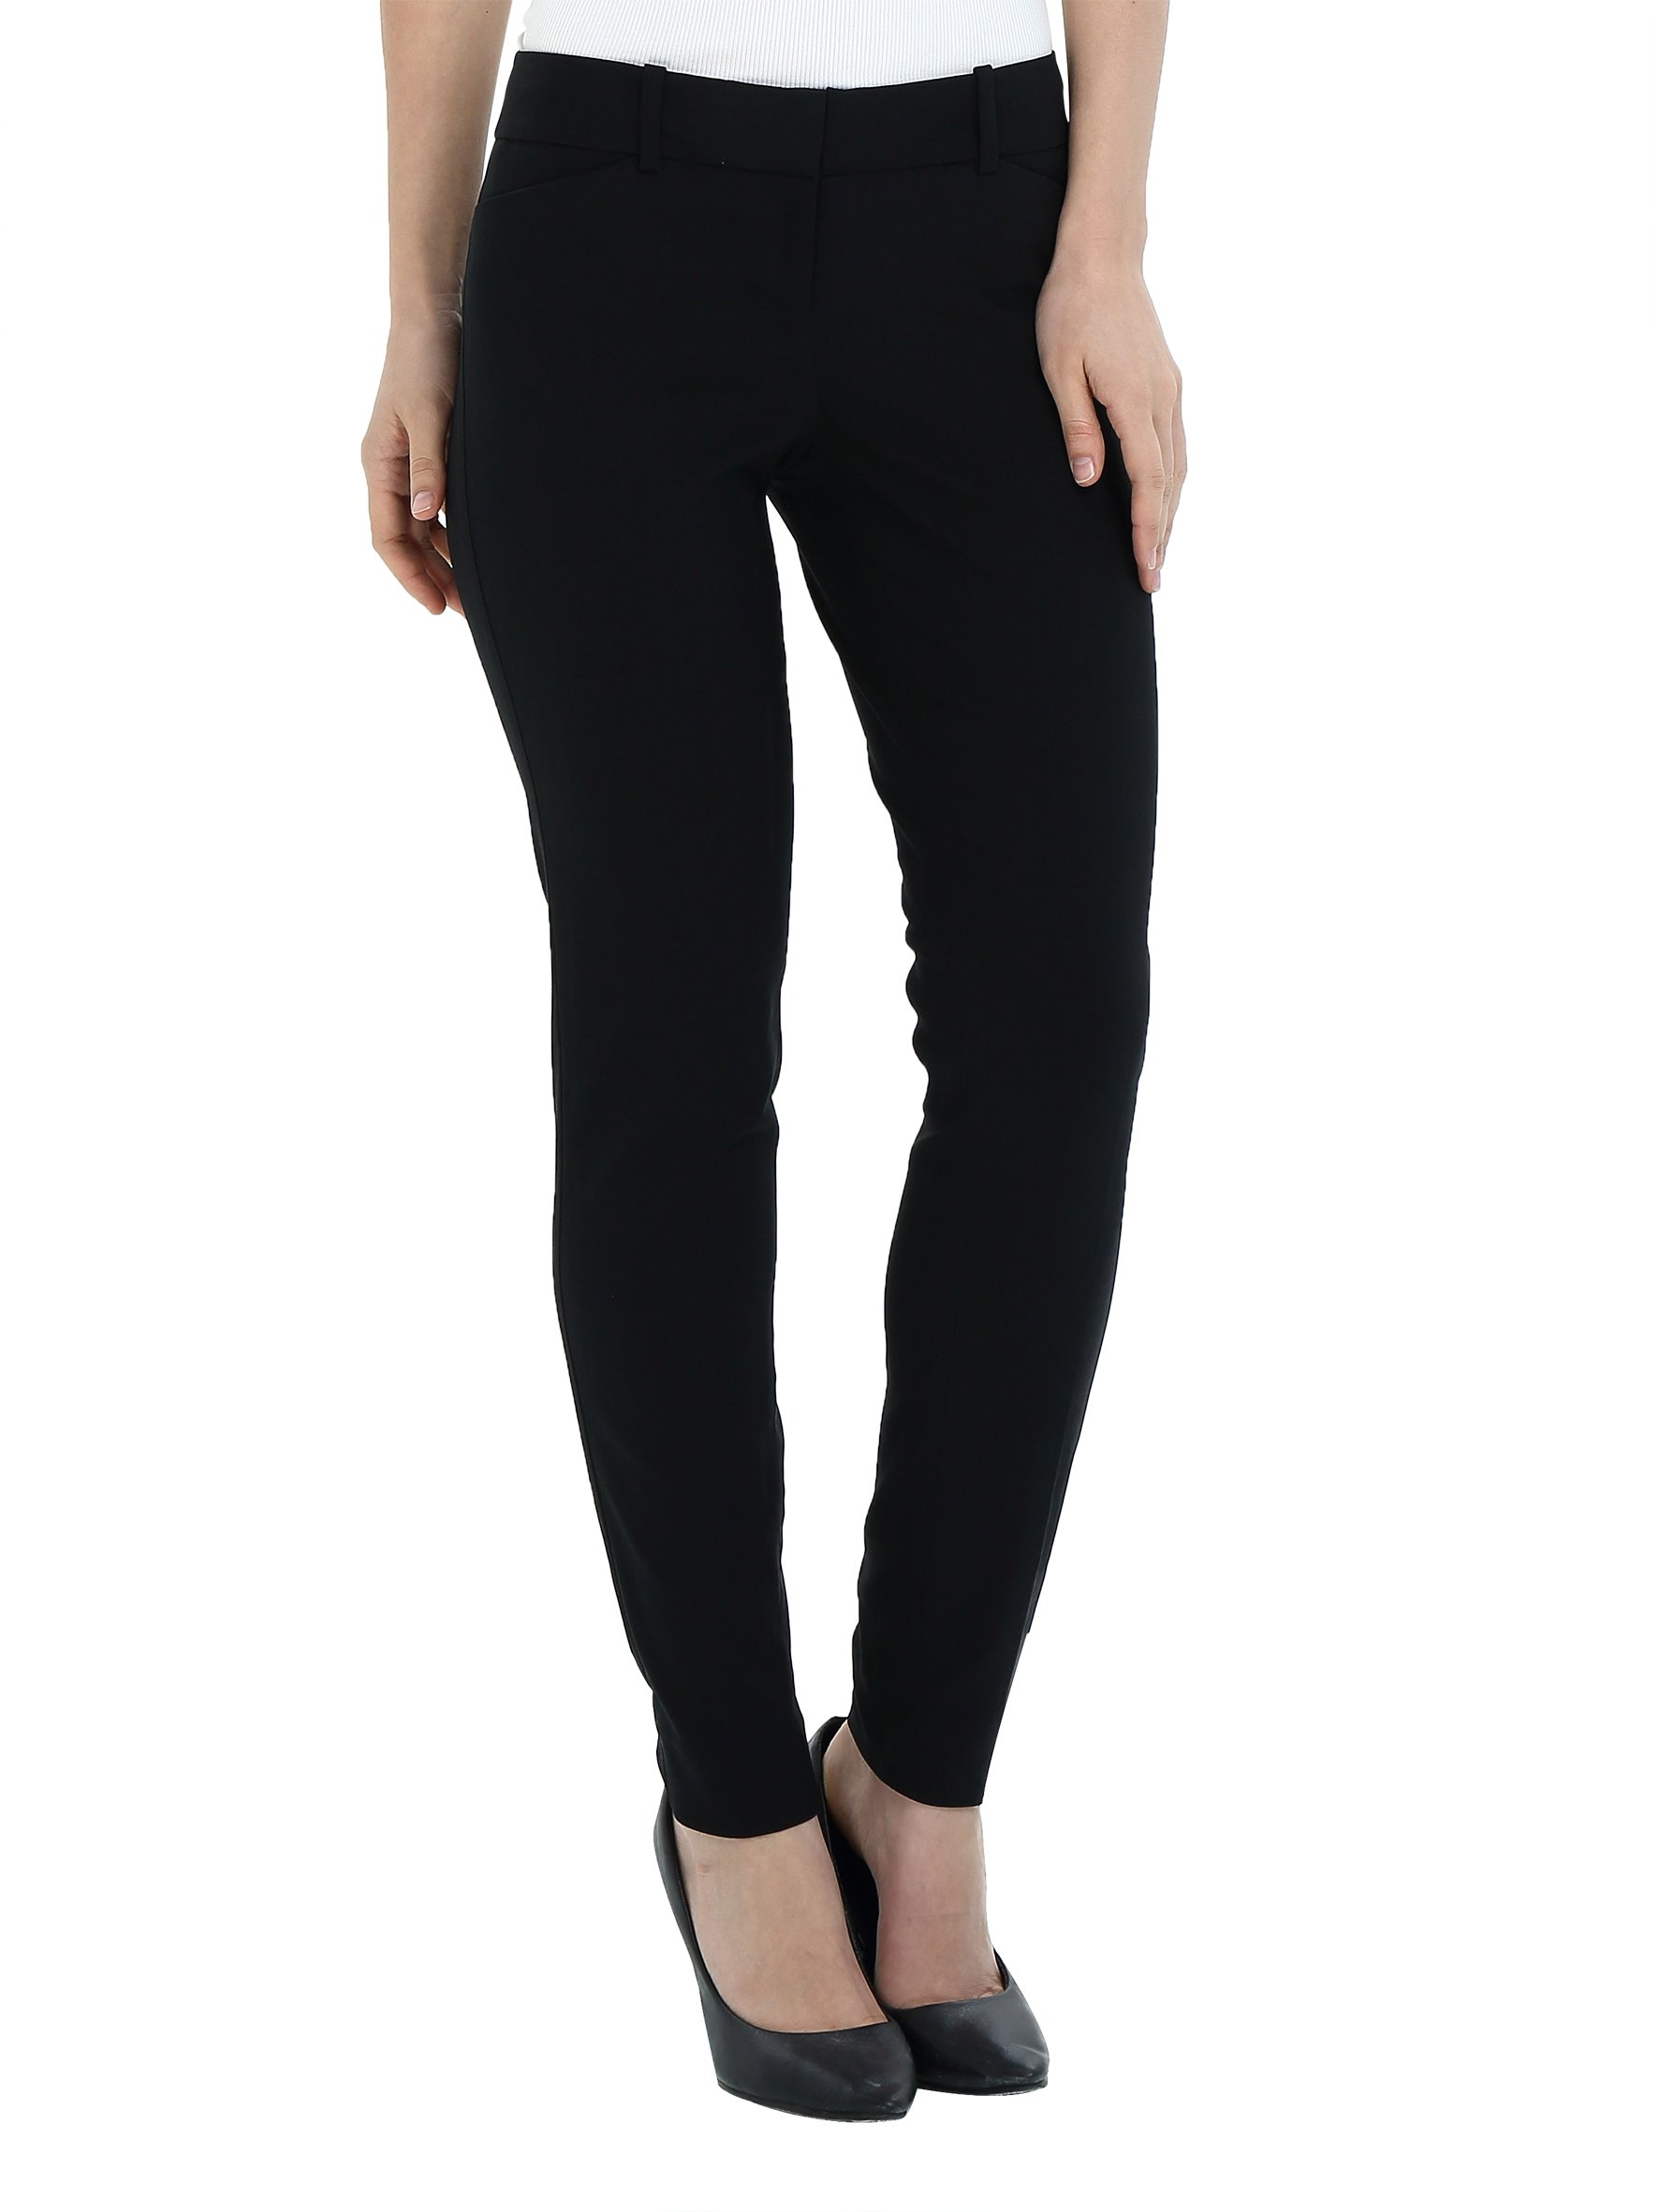 YTUIEKY Womens Dress Pants,Casual Straight Fit Trouser Career Straight Leg Pant,Slim Fit Super Stretch Comfy Skinny Pants